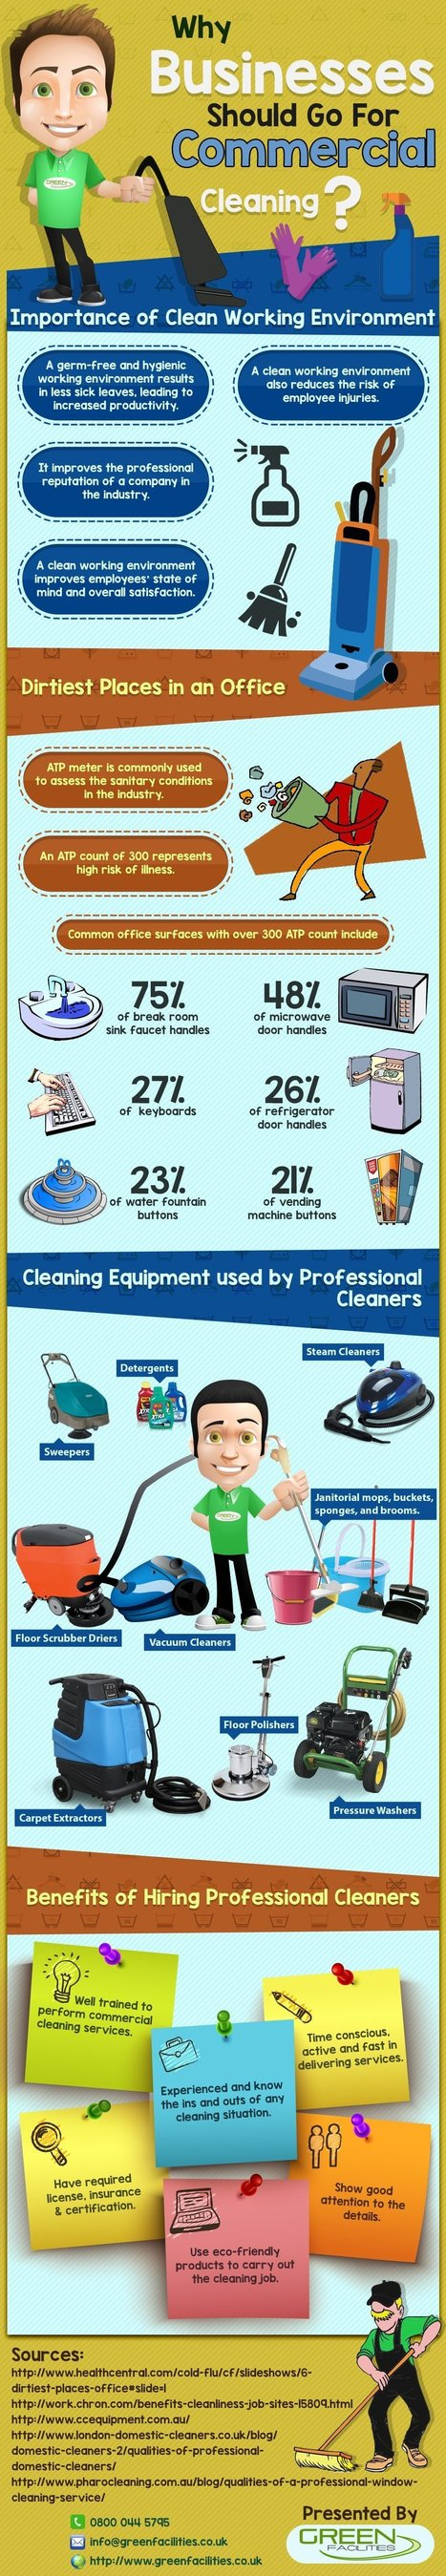 Why businesses should hire commercial cleaning companies | Infographic | Scoop.it